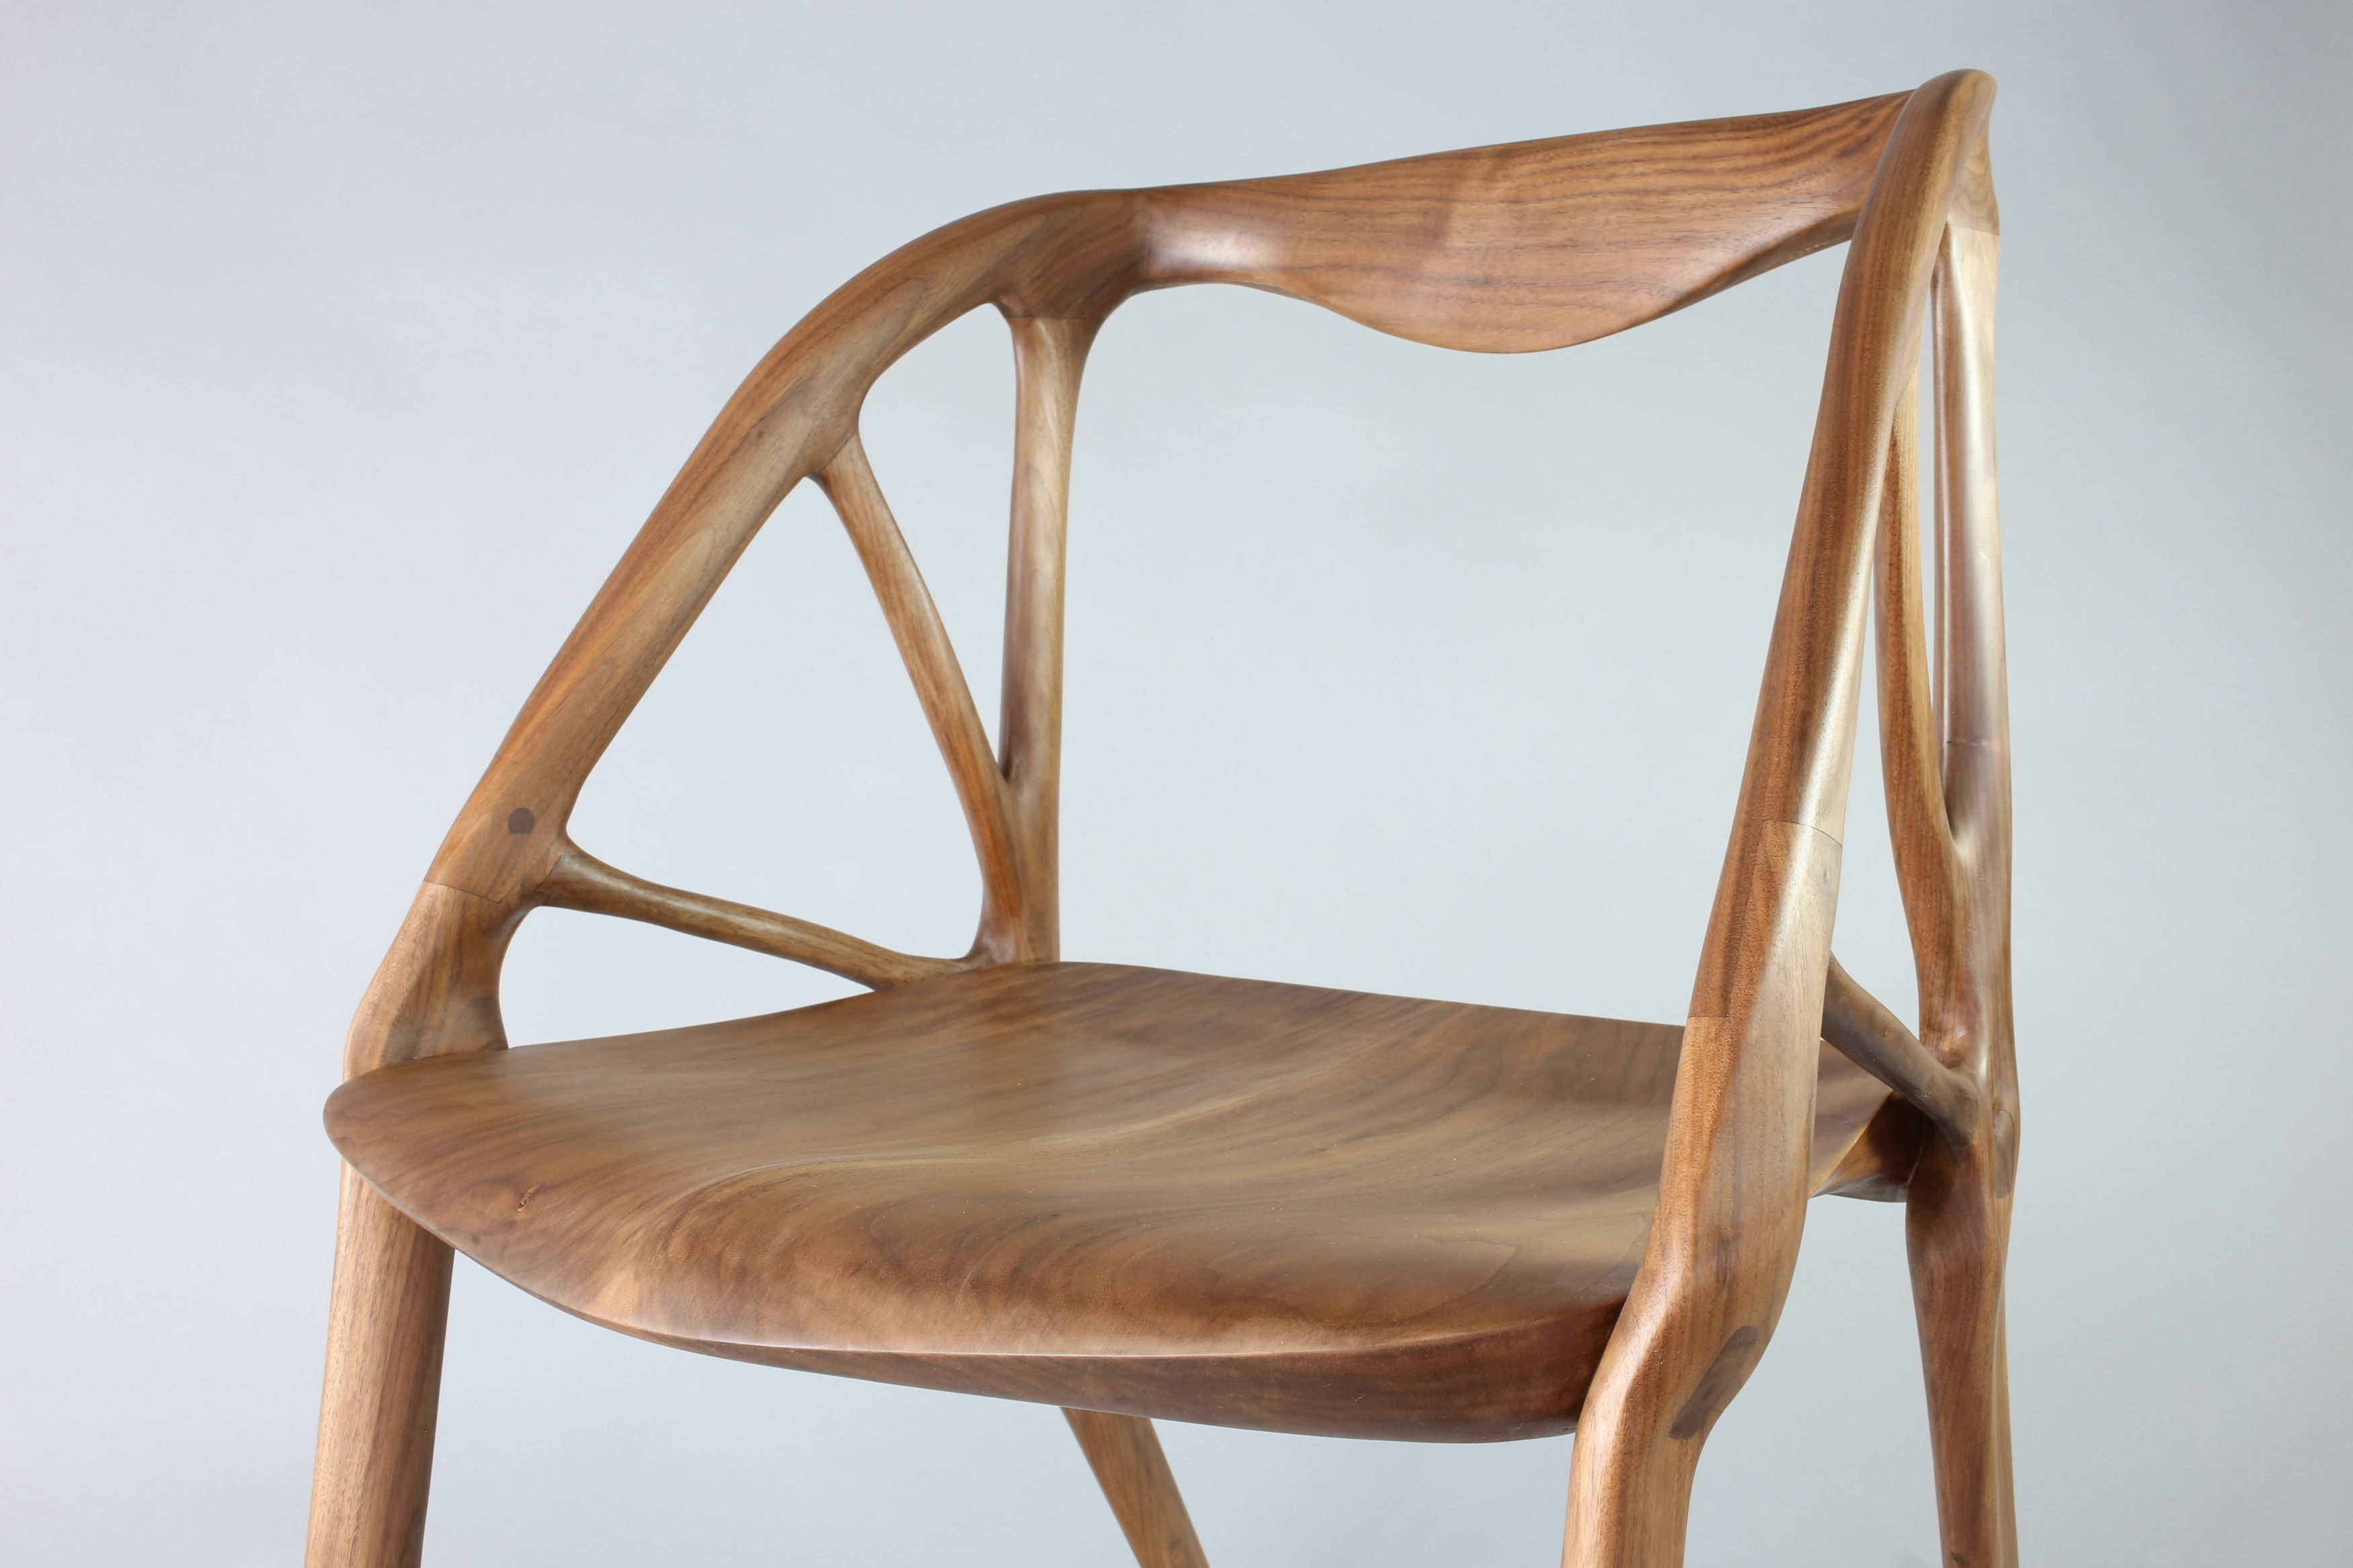 Elbo Chair Generated in Project Dreamcatcher Made with Fusion